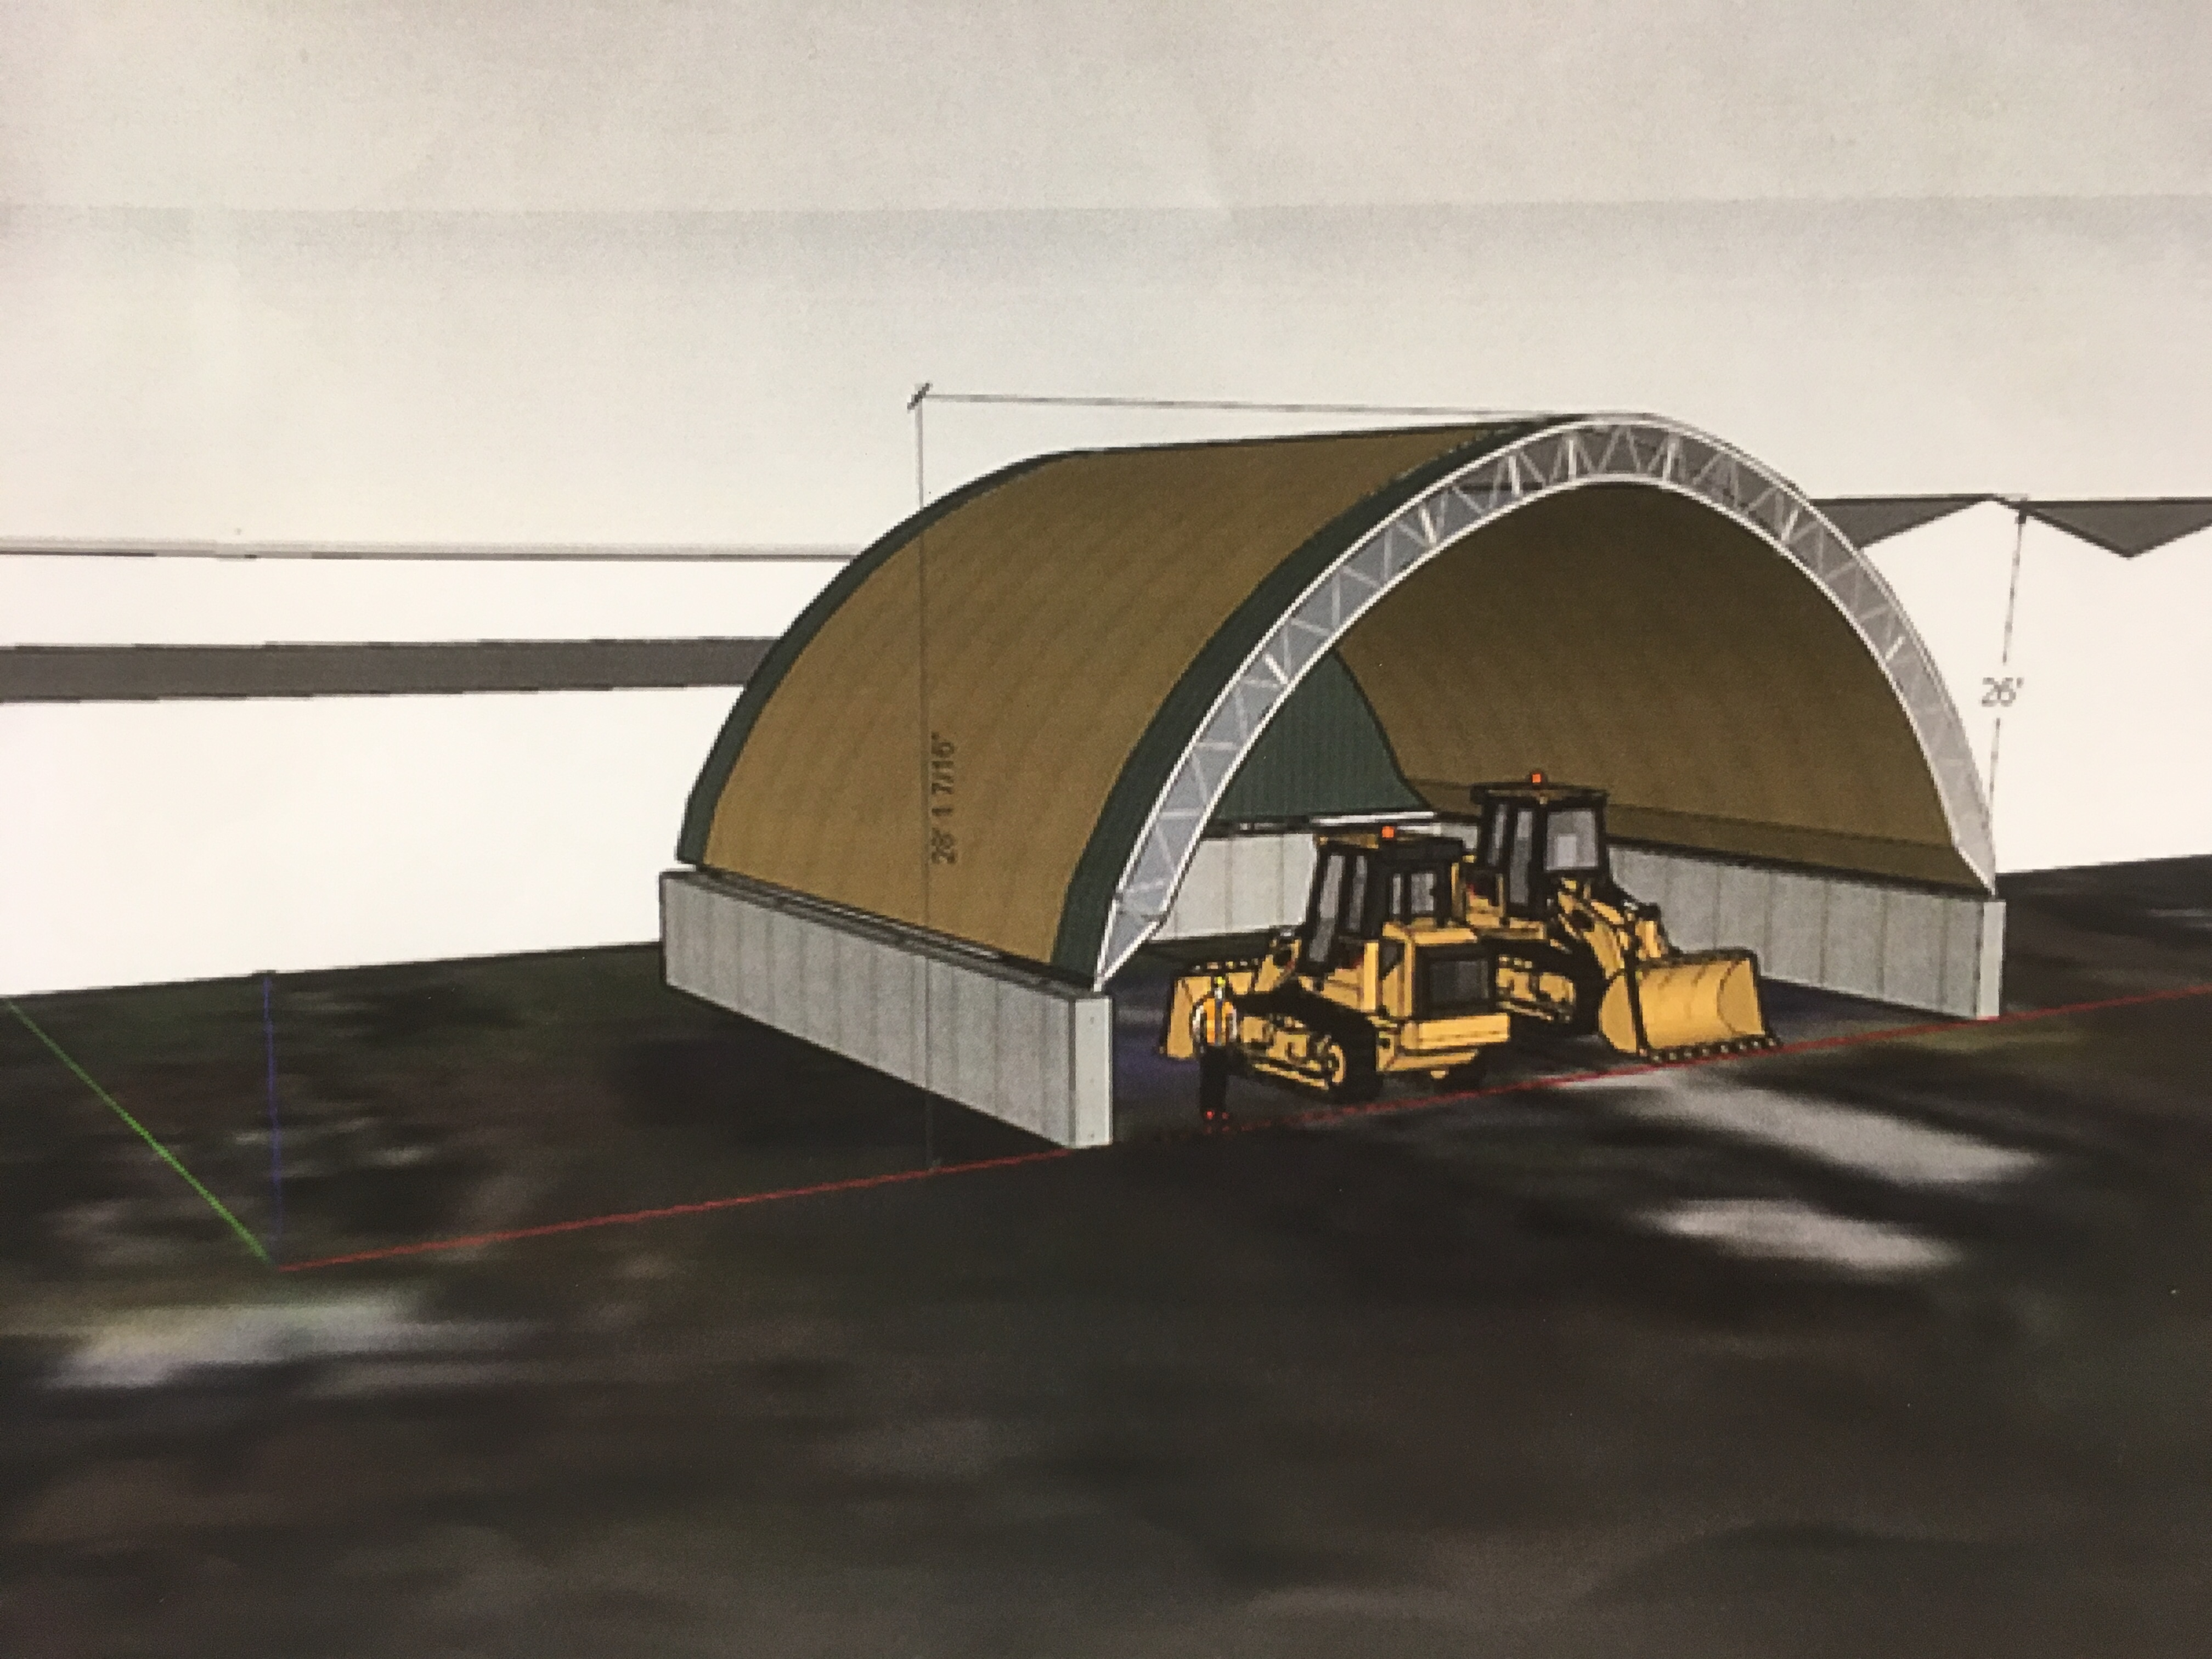 A mock-up of the proposed salt shed in Manorhaven. (Photo courtesy of Dejana Industries) : salt storage shed  - Aquiesqueretaro.Com